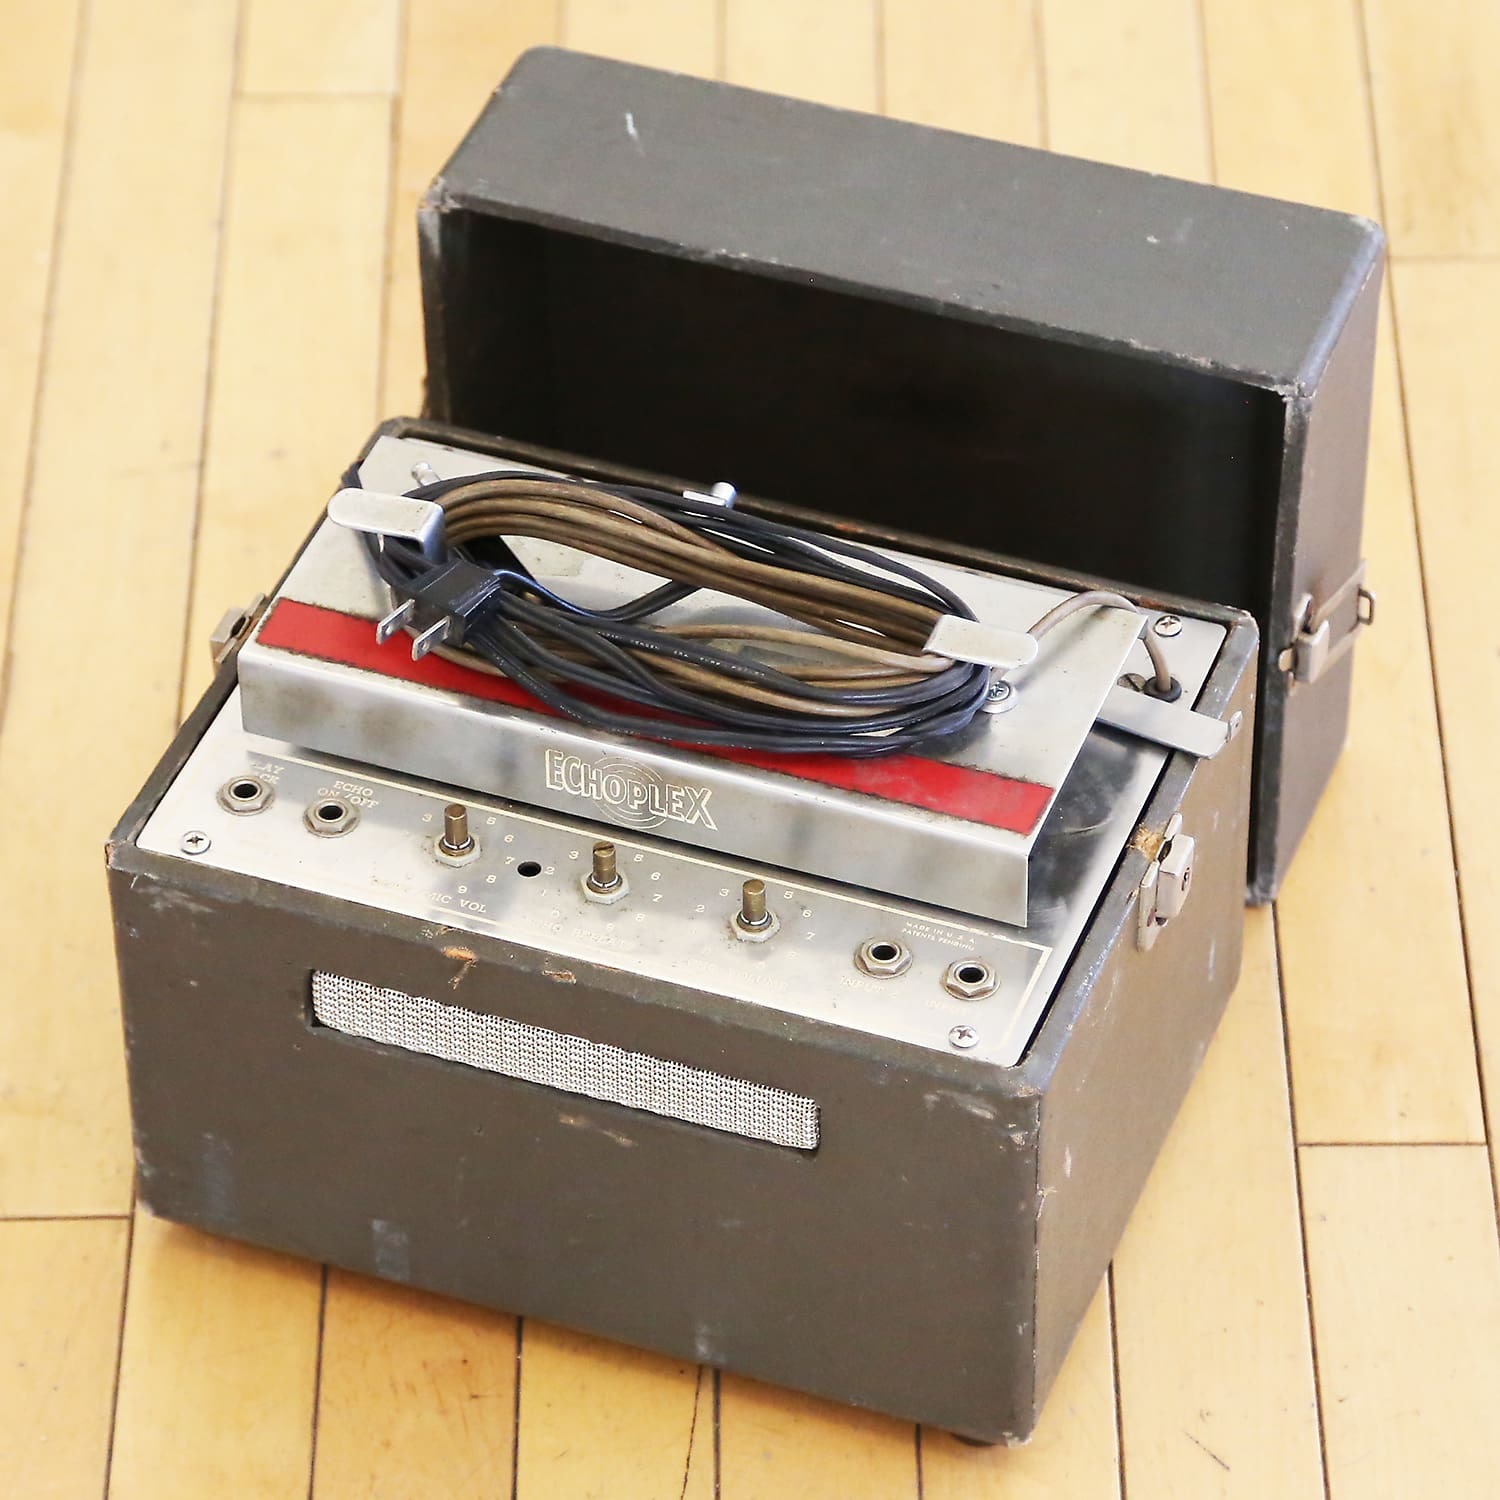 1964 Echoplex EP-1 Vintage Tape Echo Delay Pedal Effects Unit - Tube  Version! Great Project!